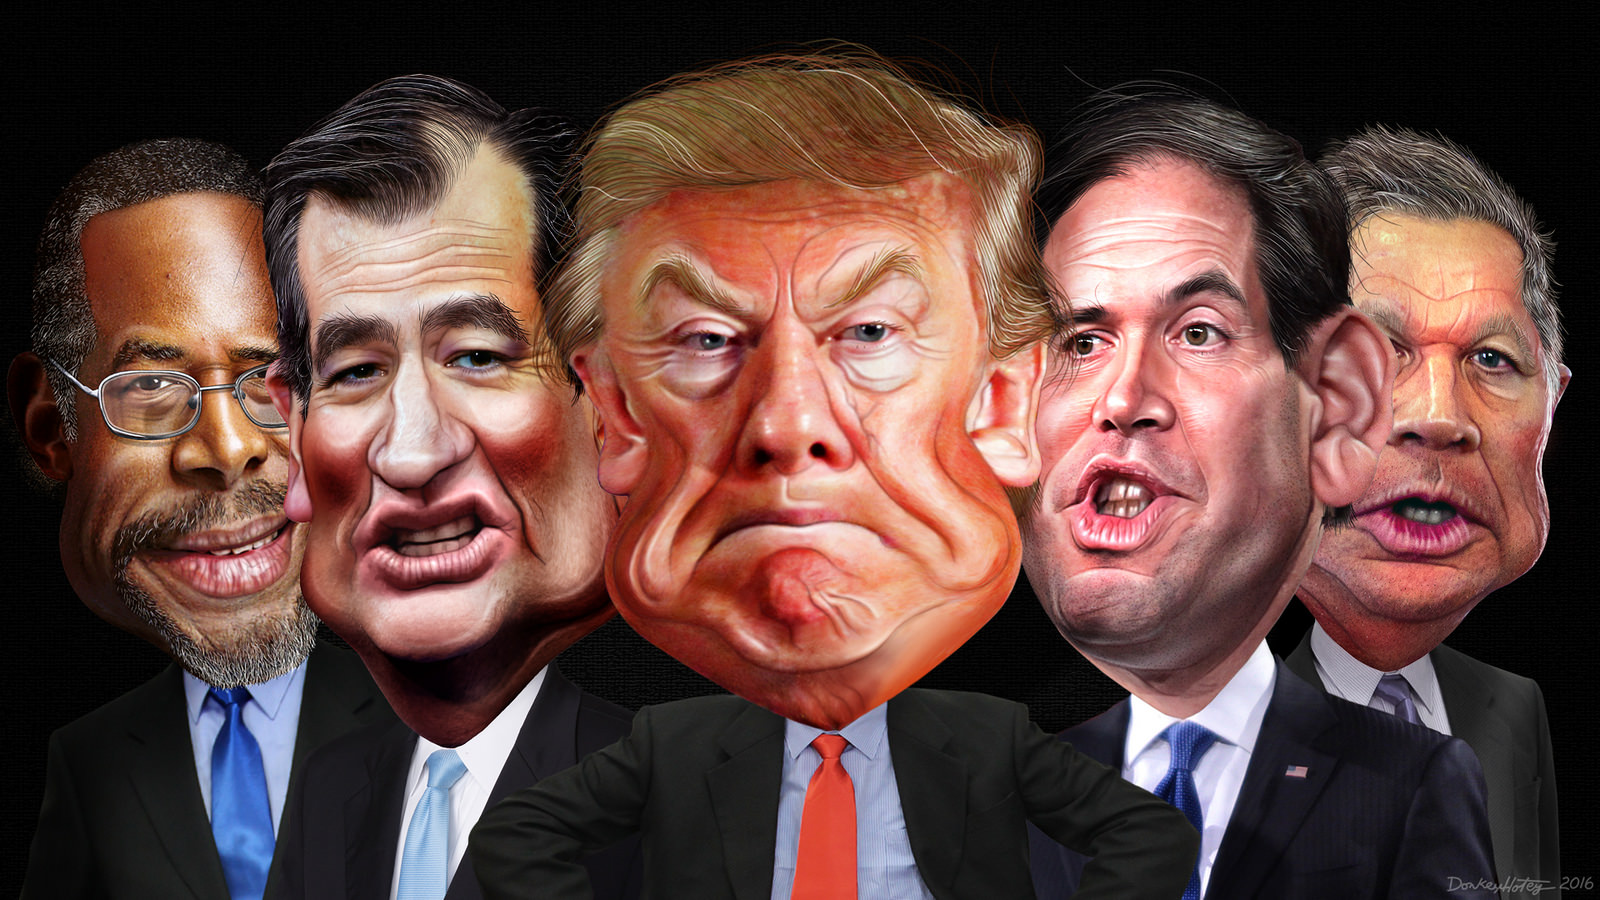 There Are No Words Left for the GOP Charade